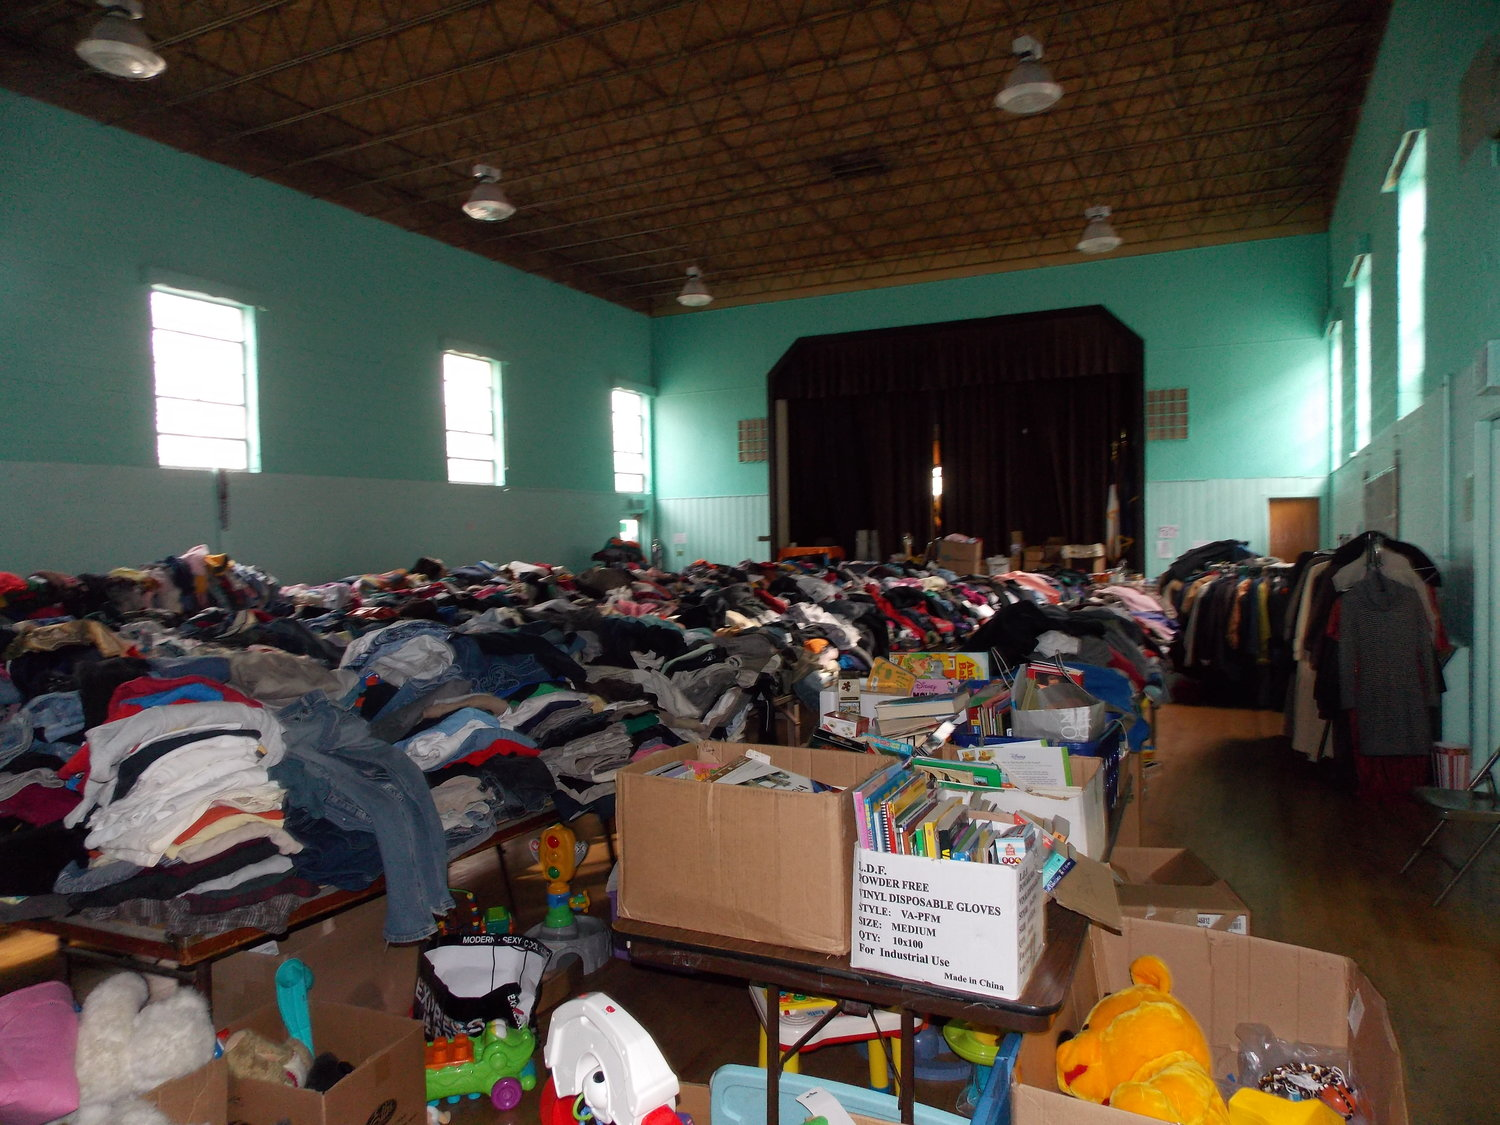 Bethany Congregational Church became a relief center for East Rockaway residents after Hurricane Sandy.